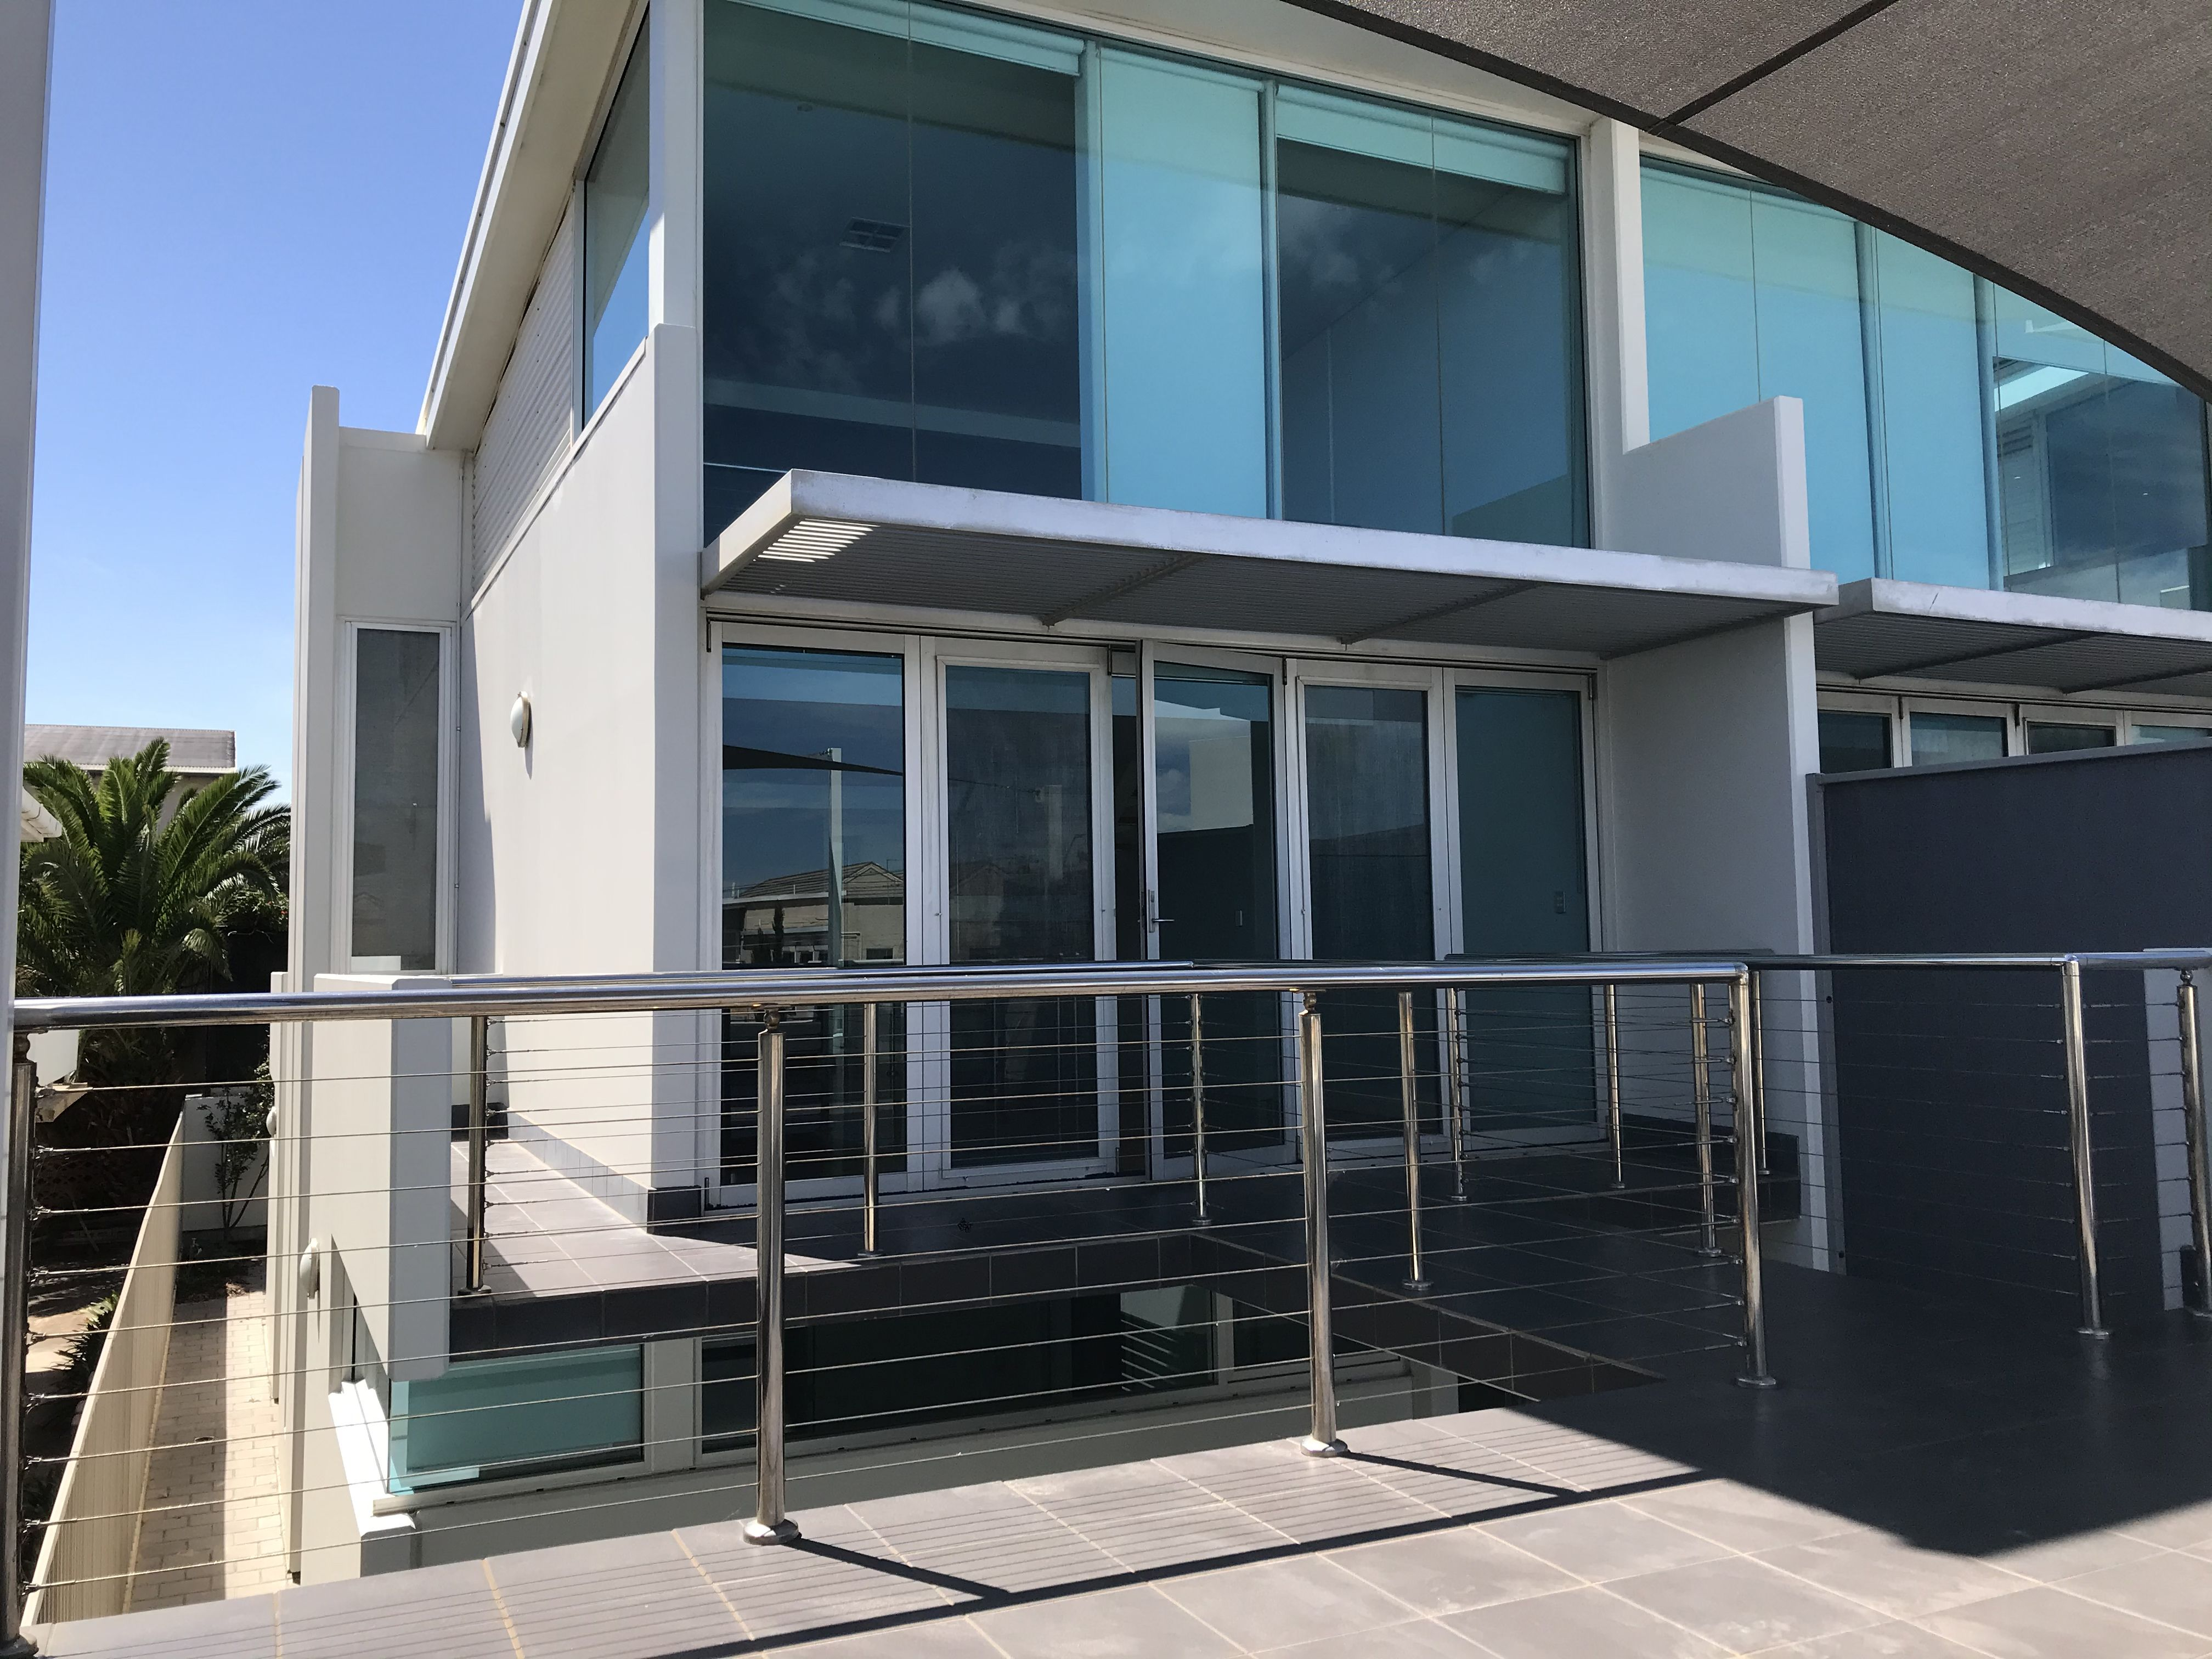 1/100 Seaview Road, West Beach SA 5024